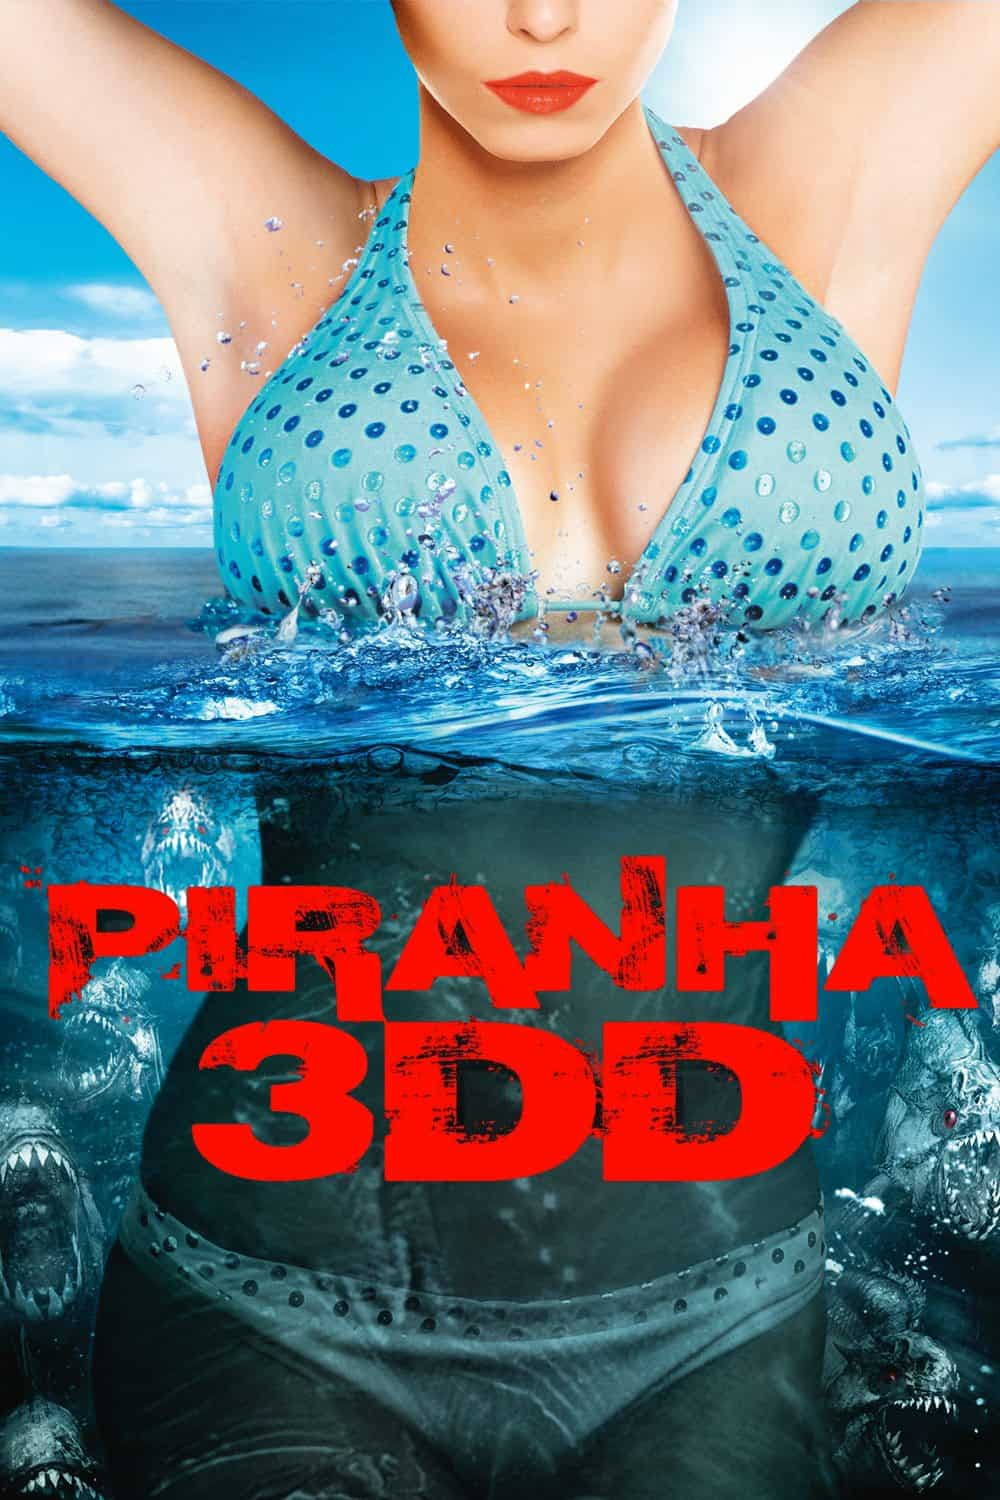 Horror Movie Review: Piranha 3DD (2012)